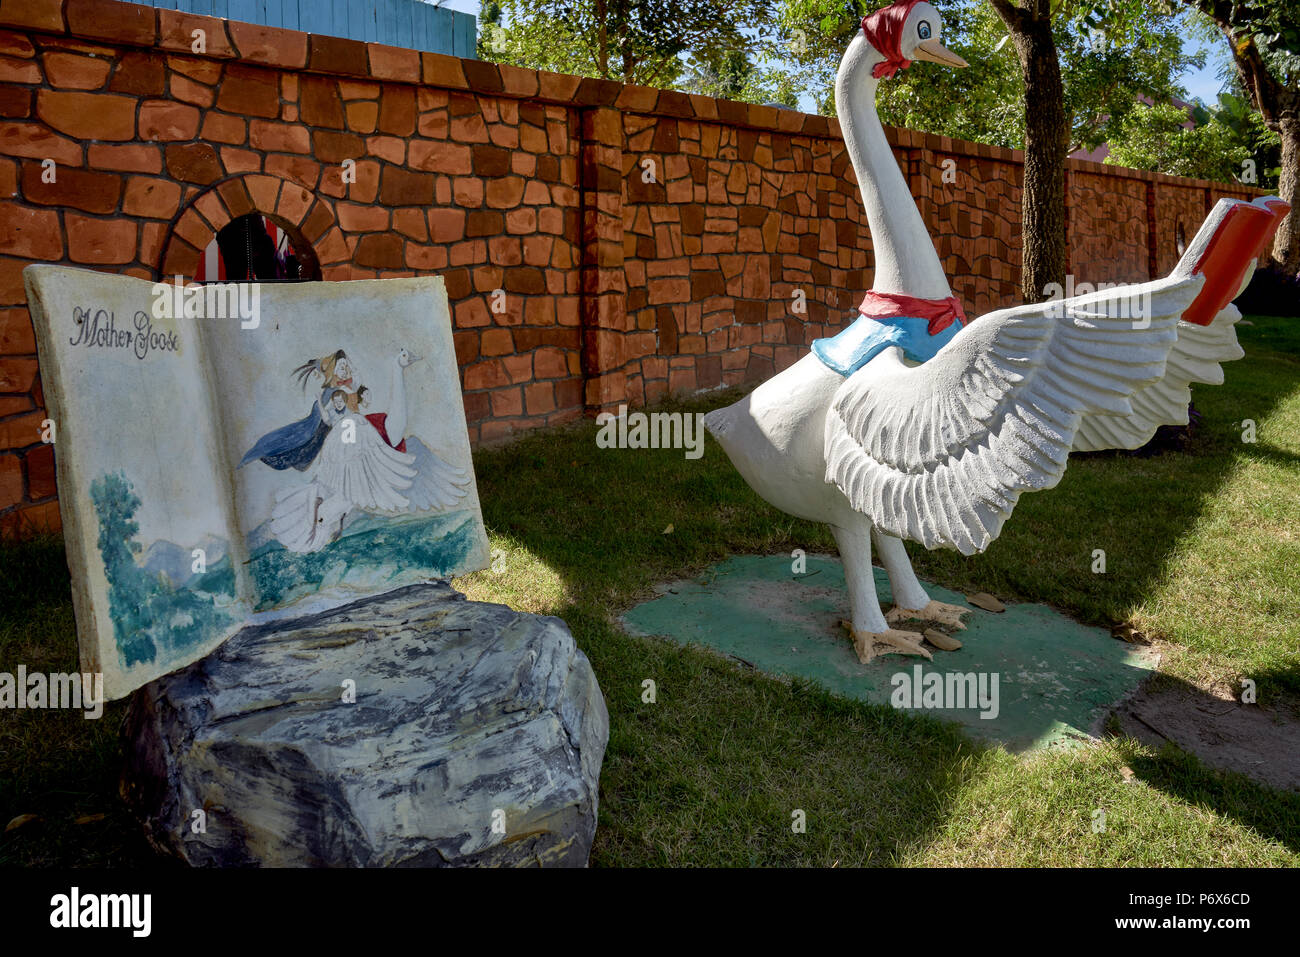 Theme park of children's Nursery Rhymes and story book characters at Pattaya Sheep farm, Thailand Southeast Asia. Storybook and nursery rhyme venue. - Stock Image